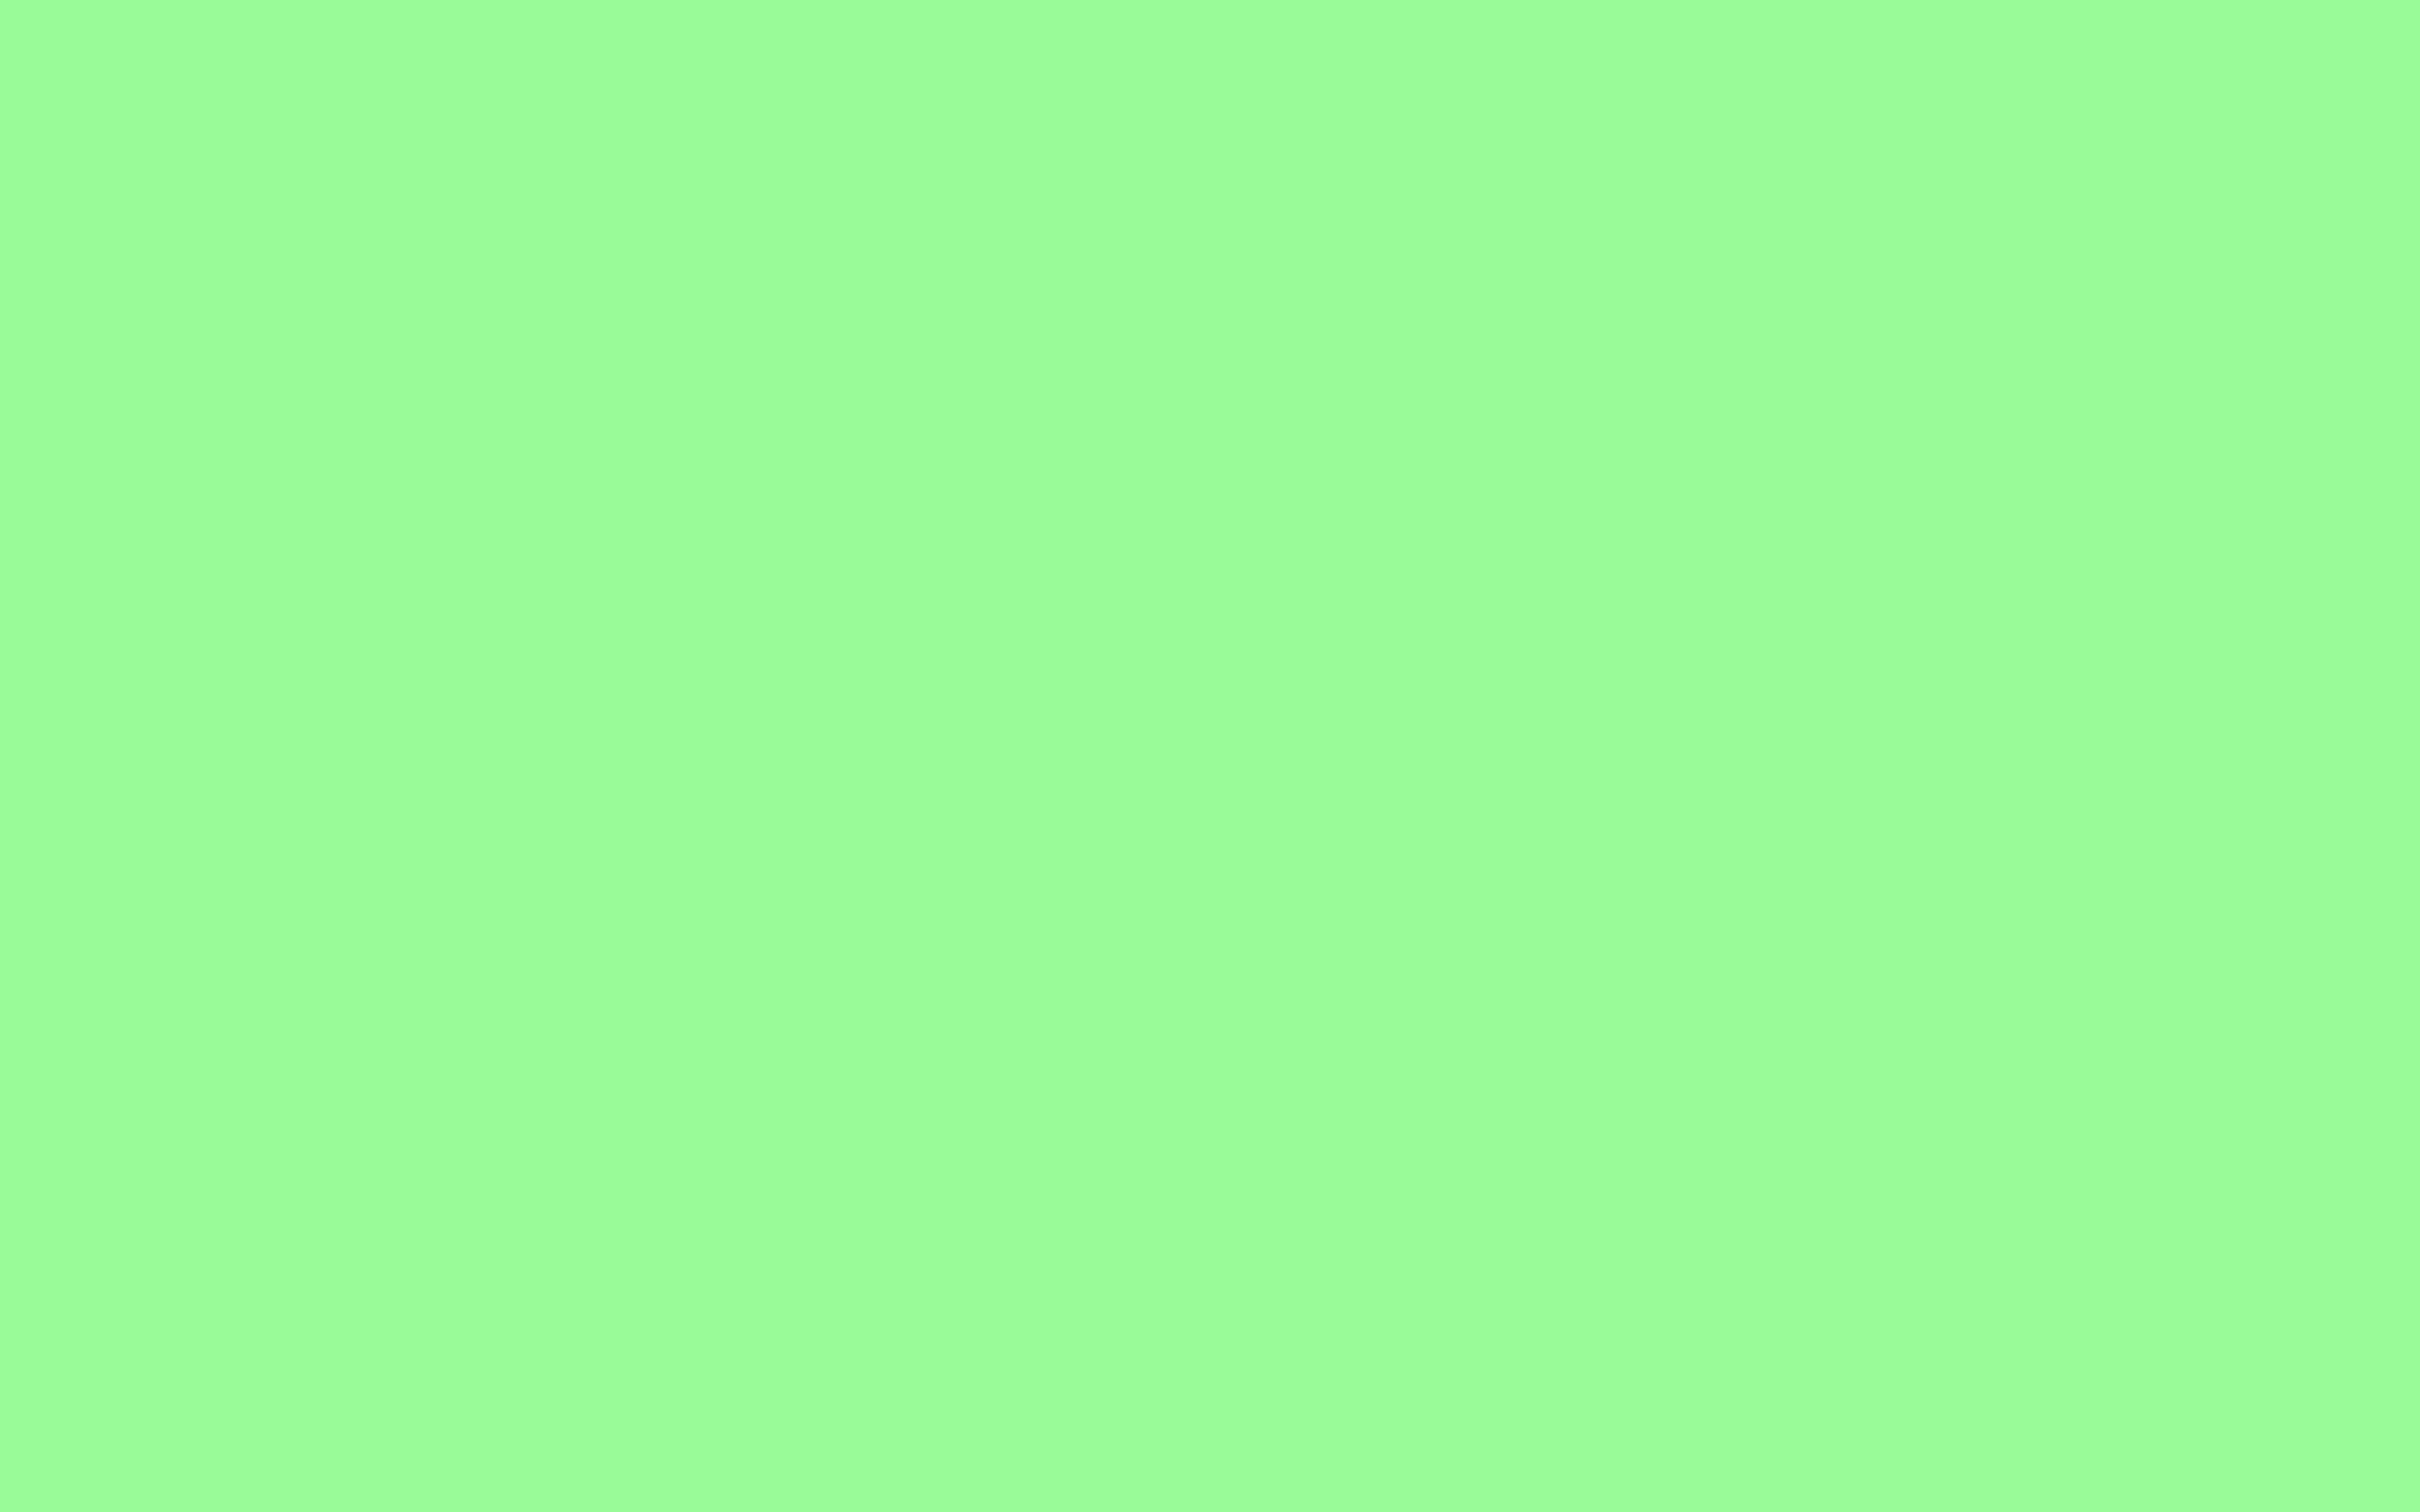 2560x1600 Pale Green Solid Color Background